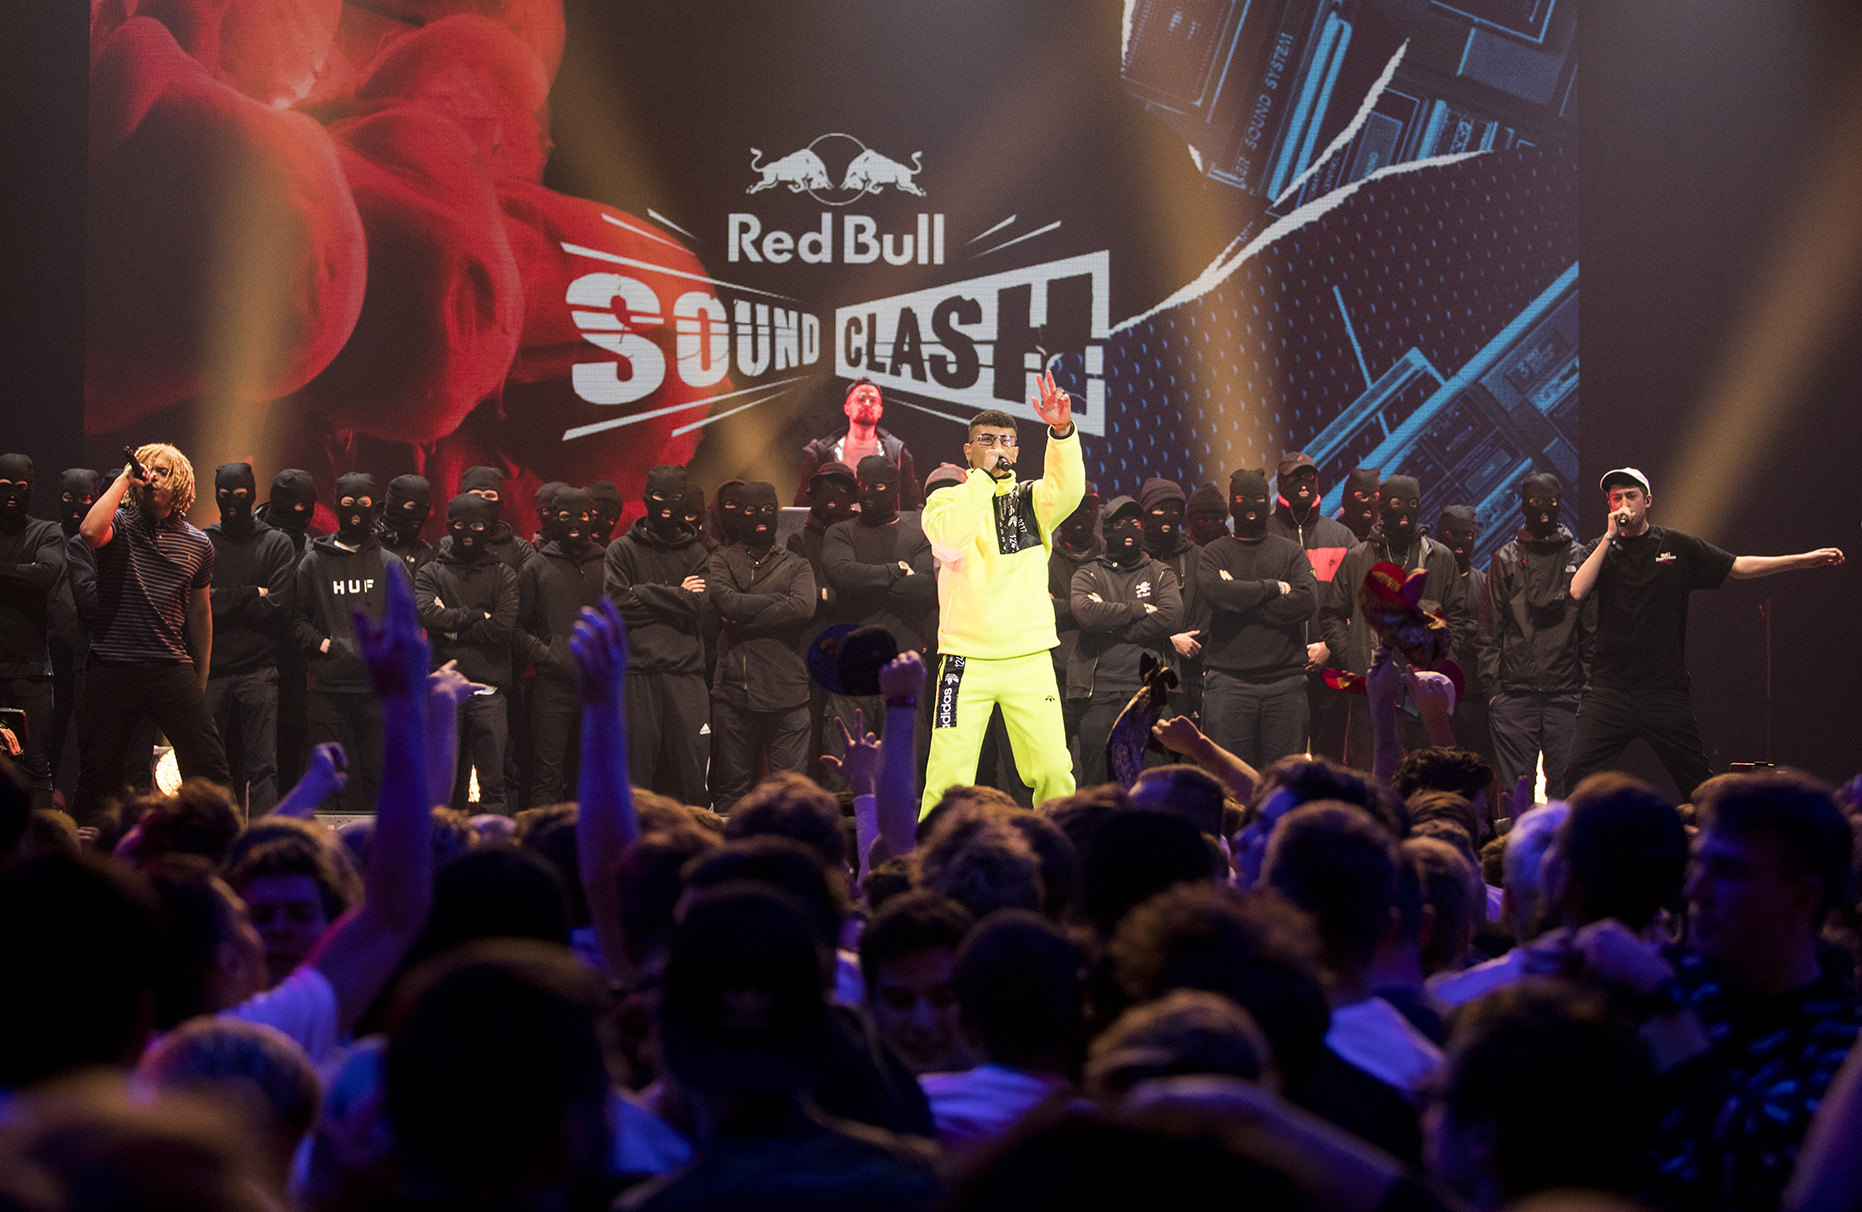 © Dirk Mathesius, CRACK IGNAZ, SOUFIAN & LGOONY is performing at Red Bull Sound Clash Stage, CRACK IGNAZ, LGOONY, SOUFIAN/ Team New Level VS. SAMY DELUXE, EKO FRESH, AFROB/ Team Reality Check, Client Red Bull, Hamburg